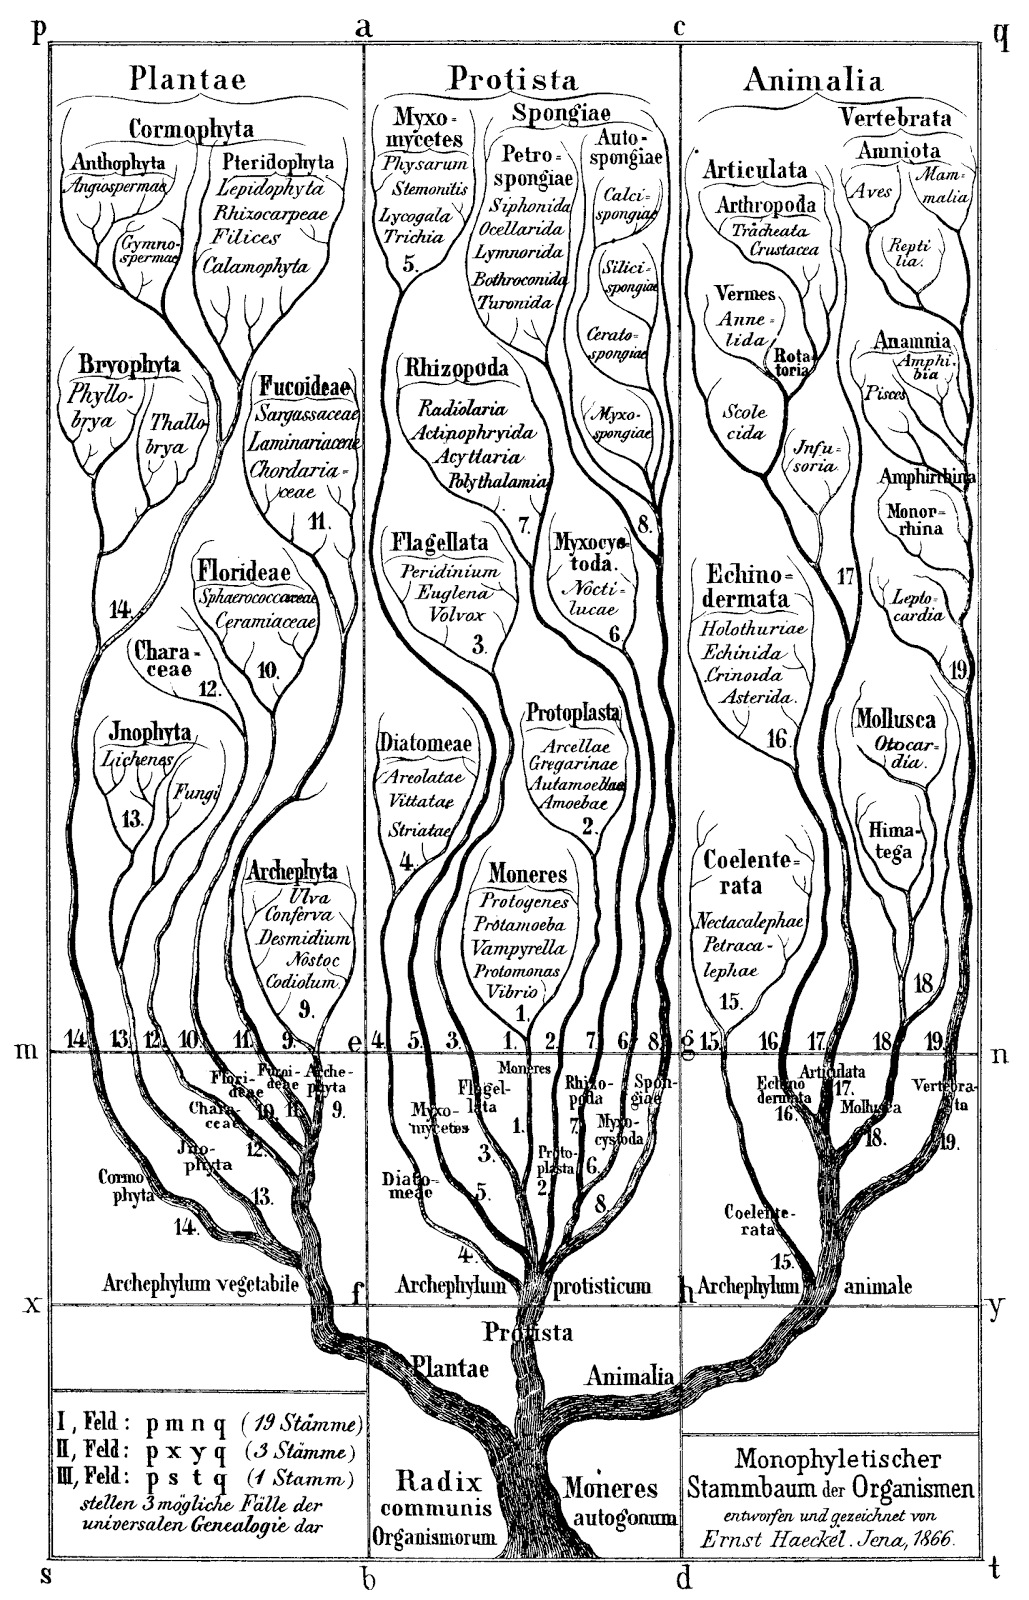 Of Bacteria and Men: The tree of life versus the rhizome of life